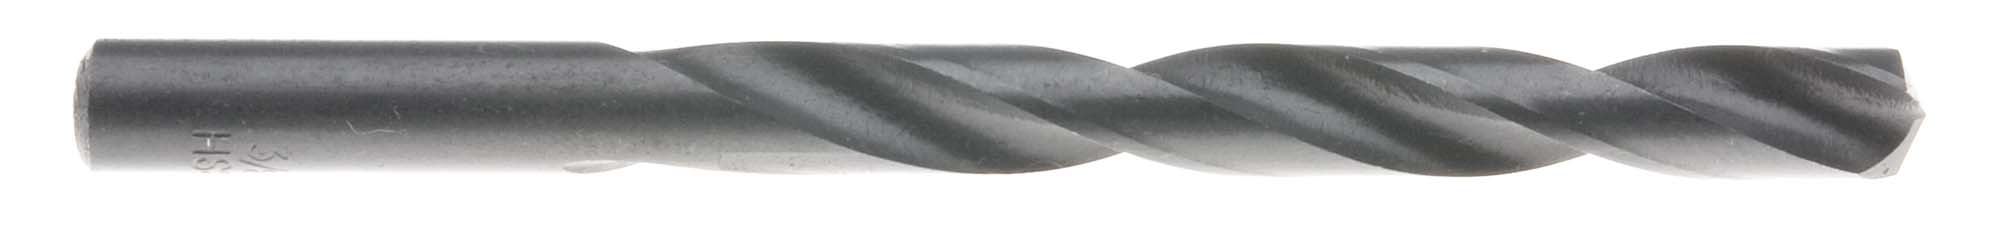 "#27 (.1440"") Heavy Duty Split Point Jobber Drill Bit, High Speed Steel"